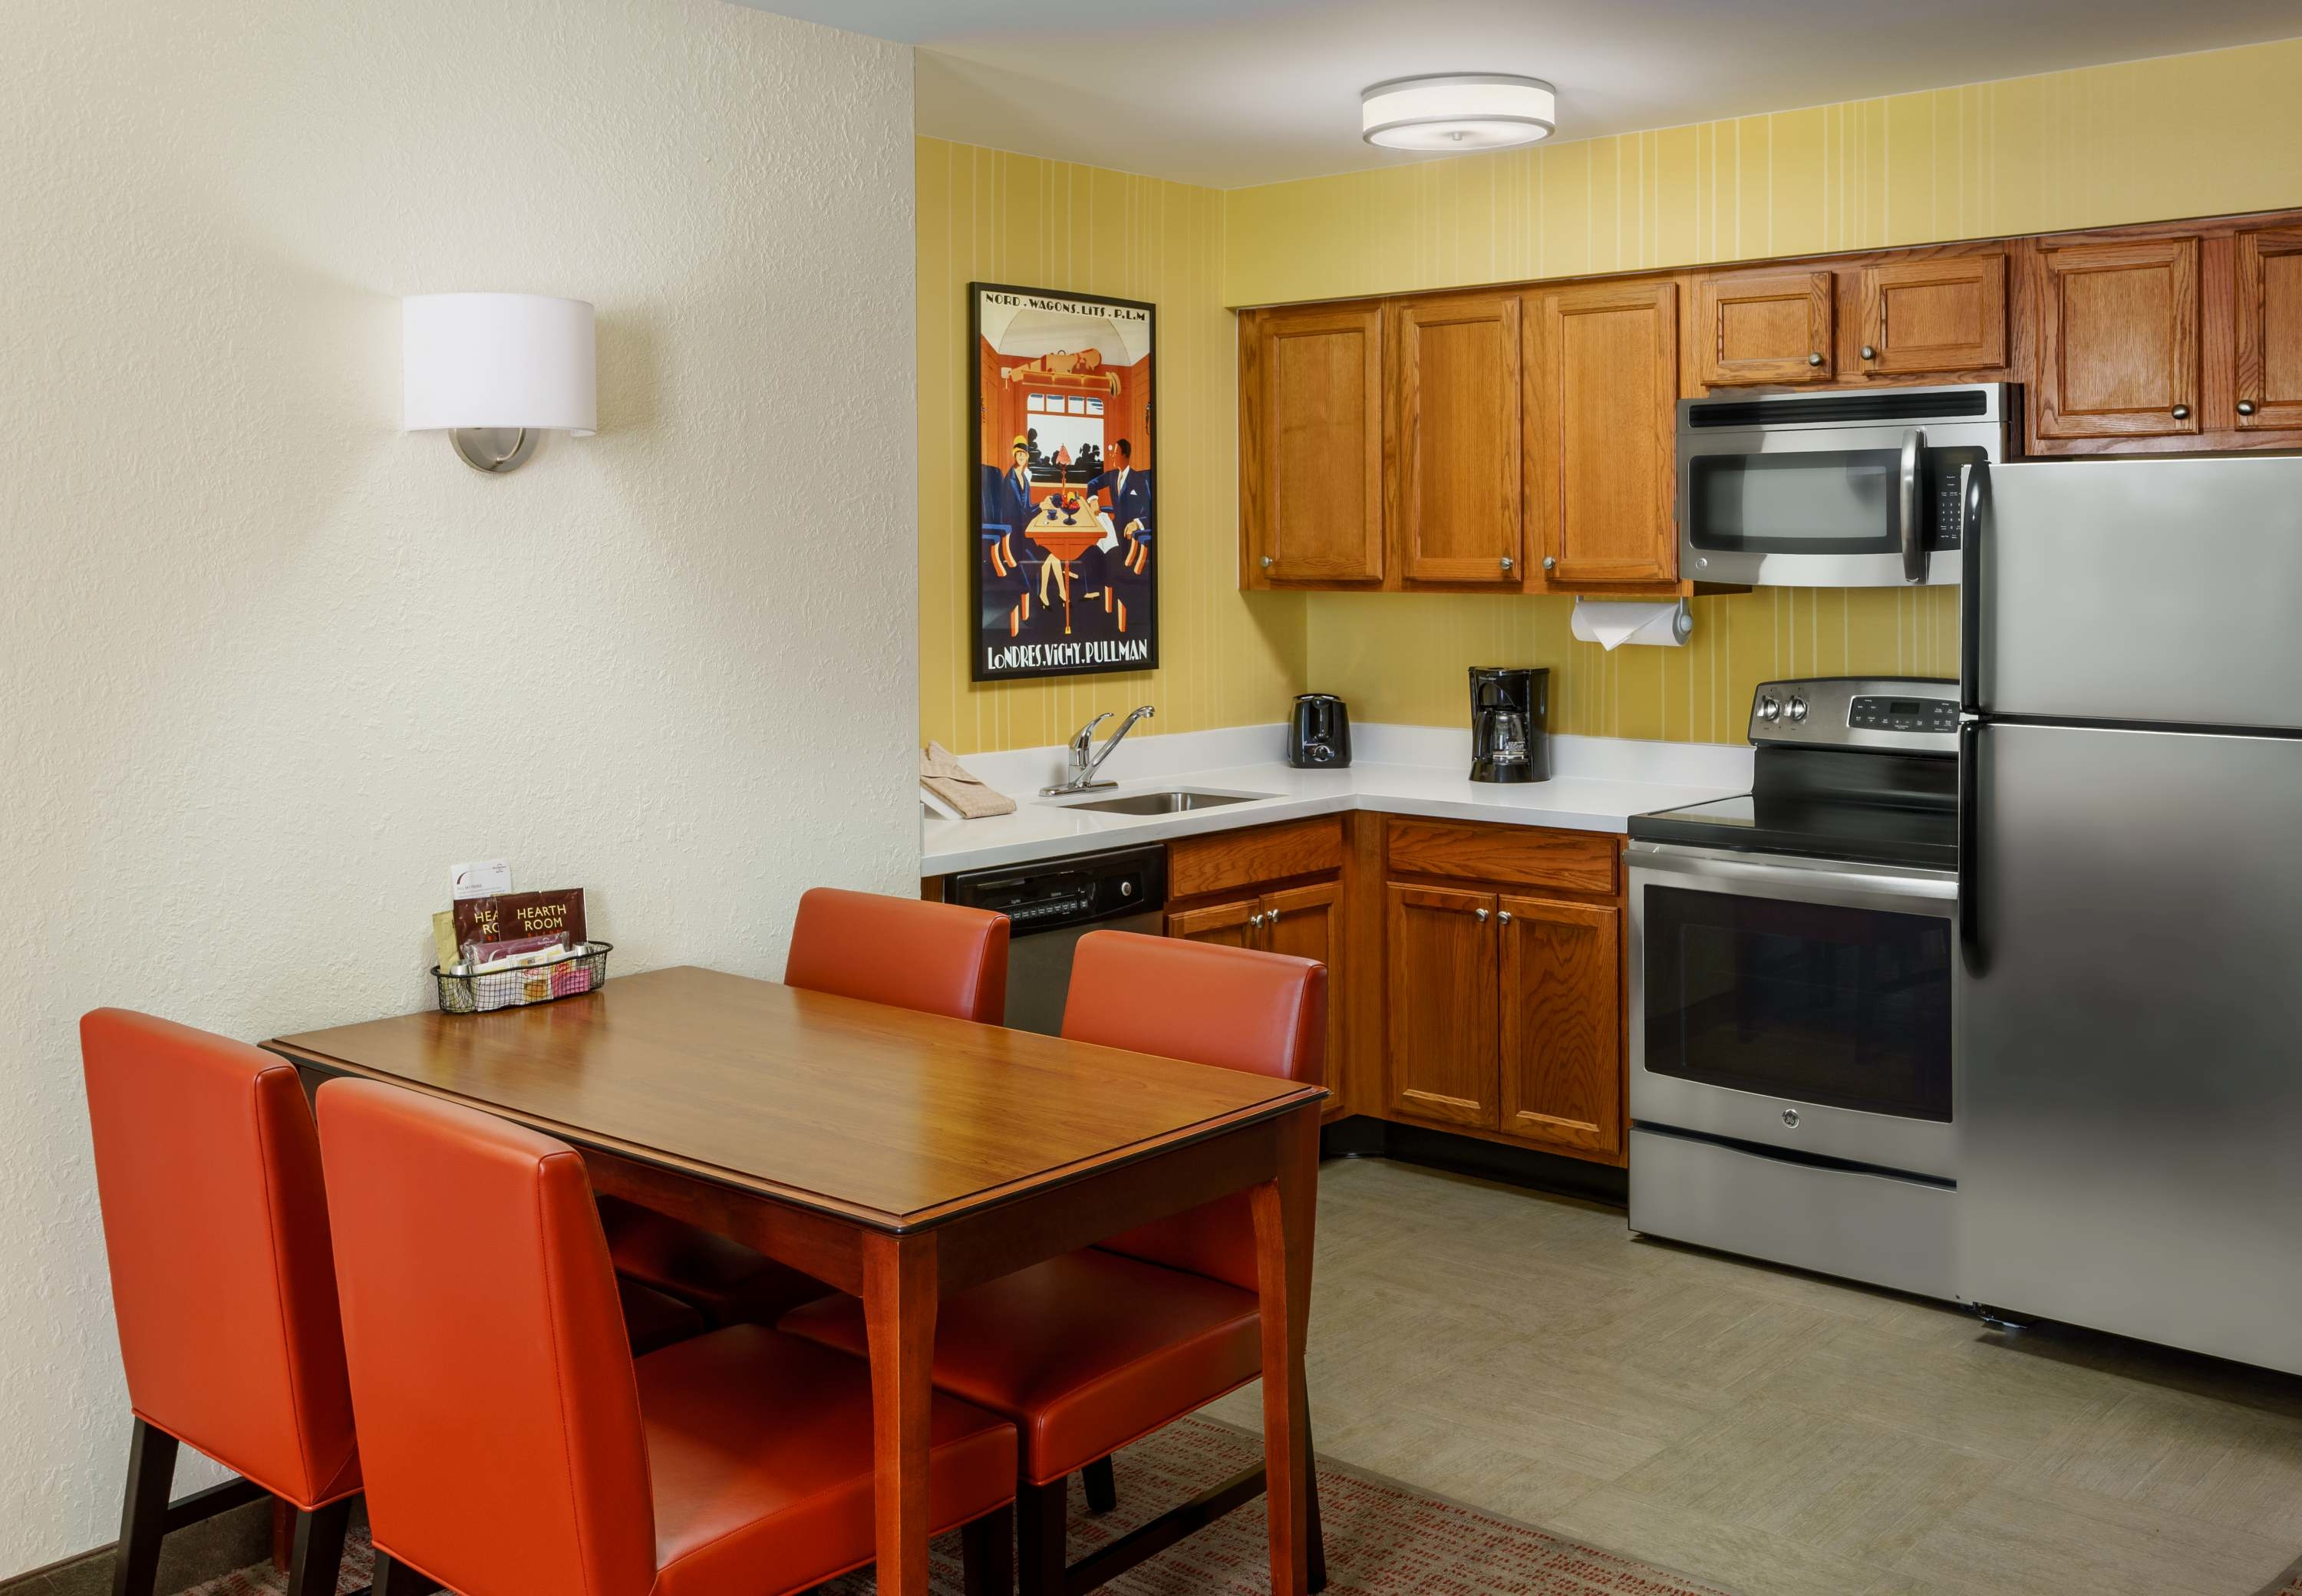 Residence Inn by Marriott Houston Downtown/Convention Center image 11